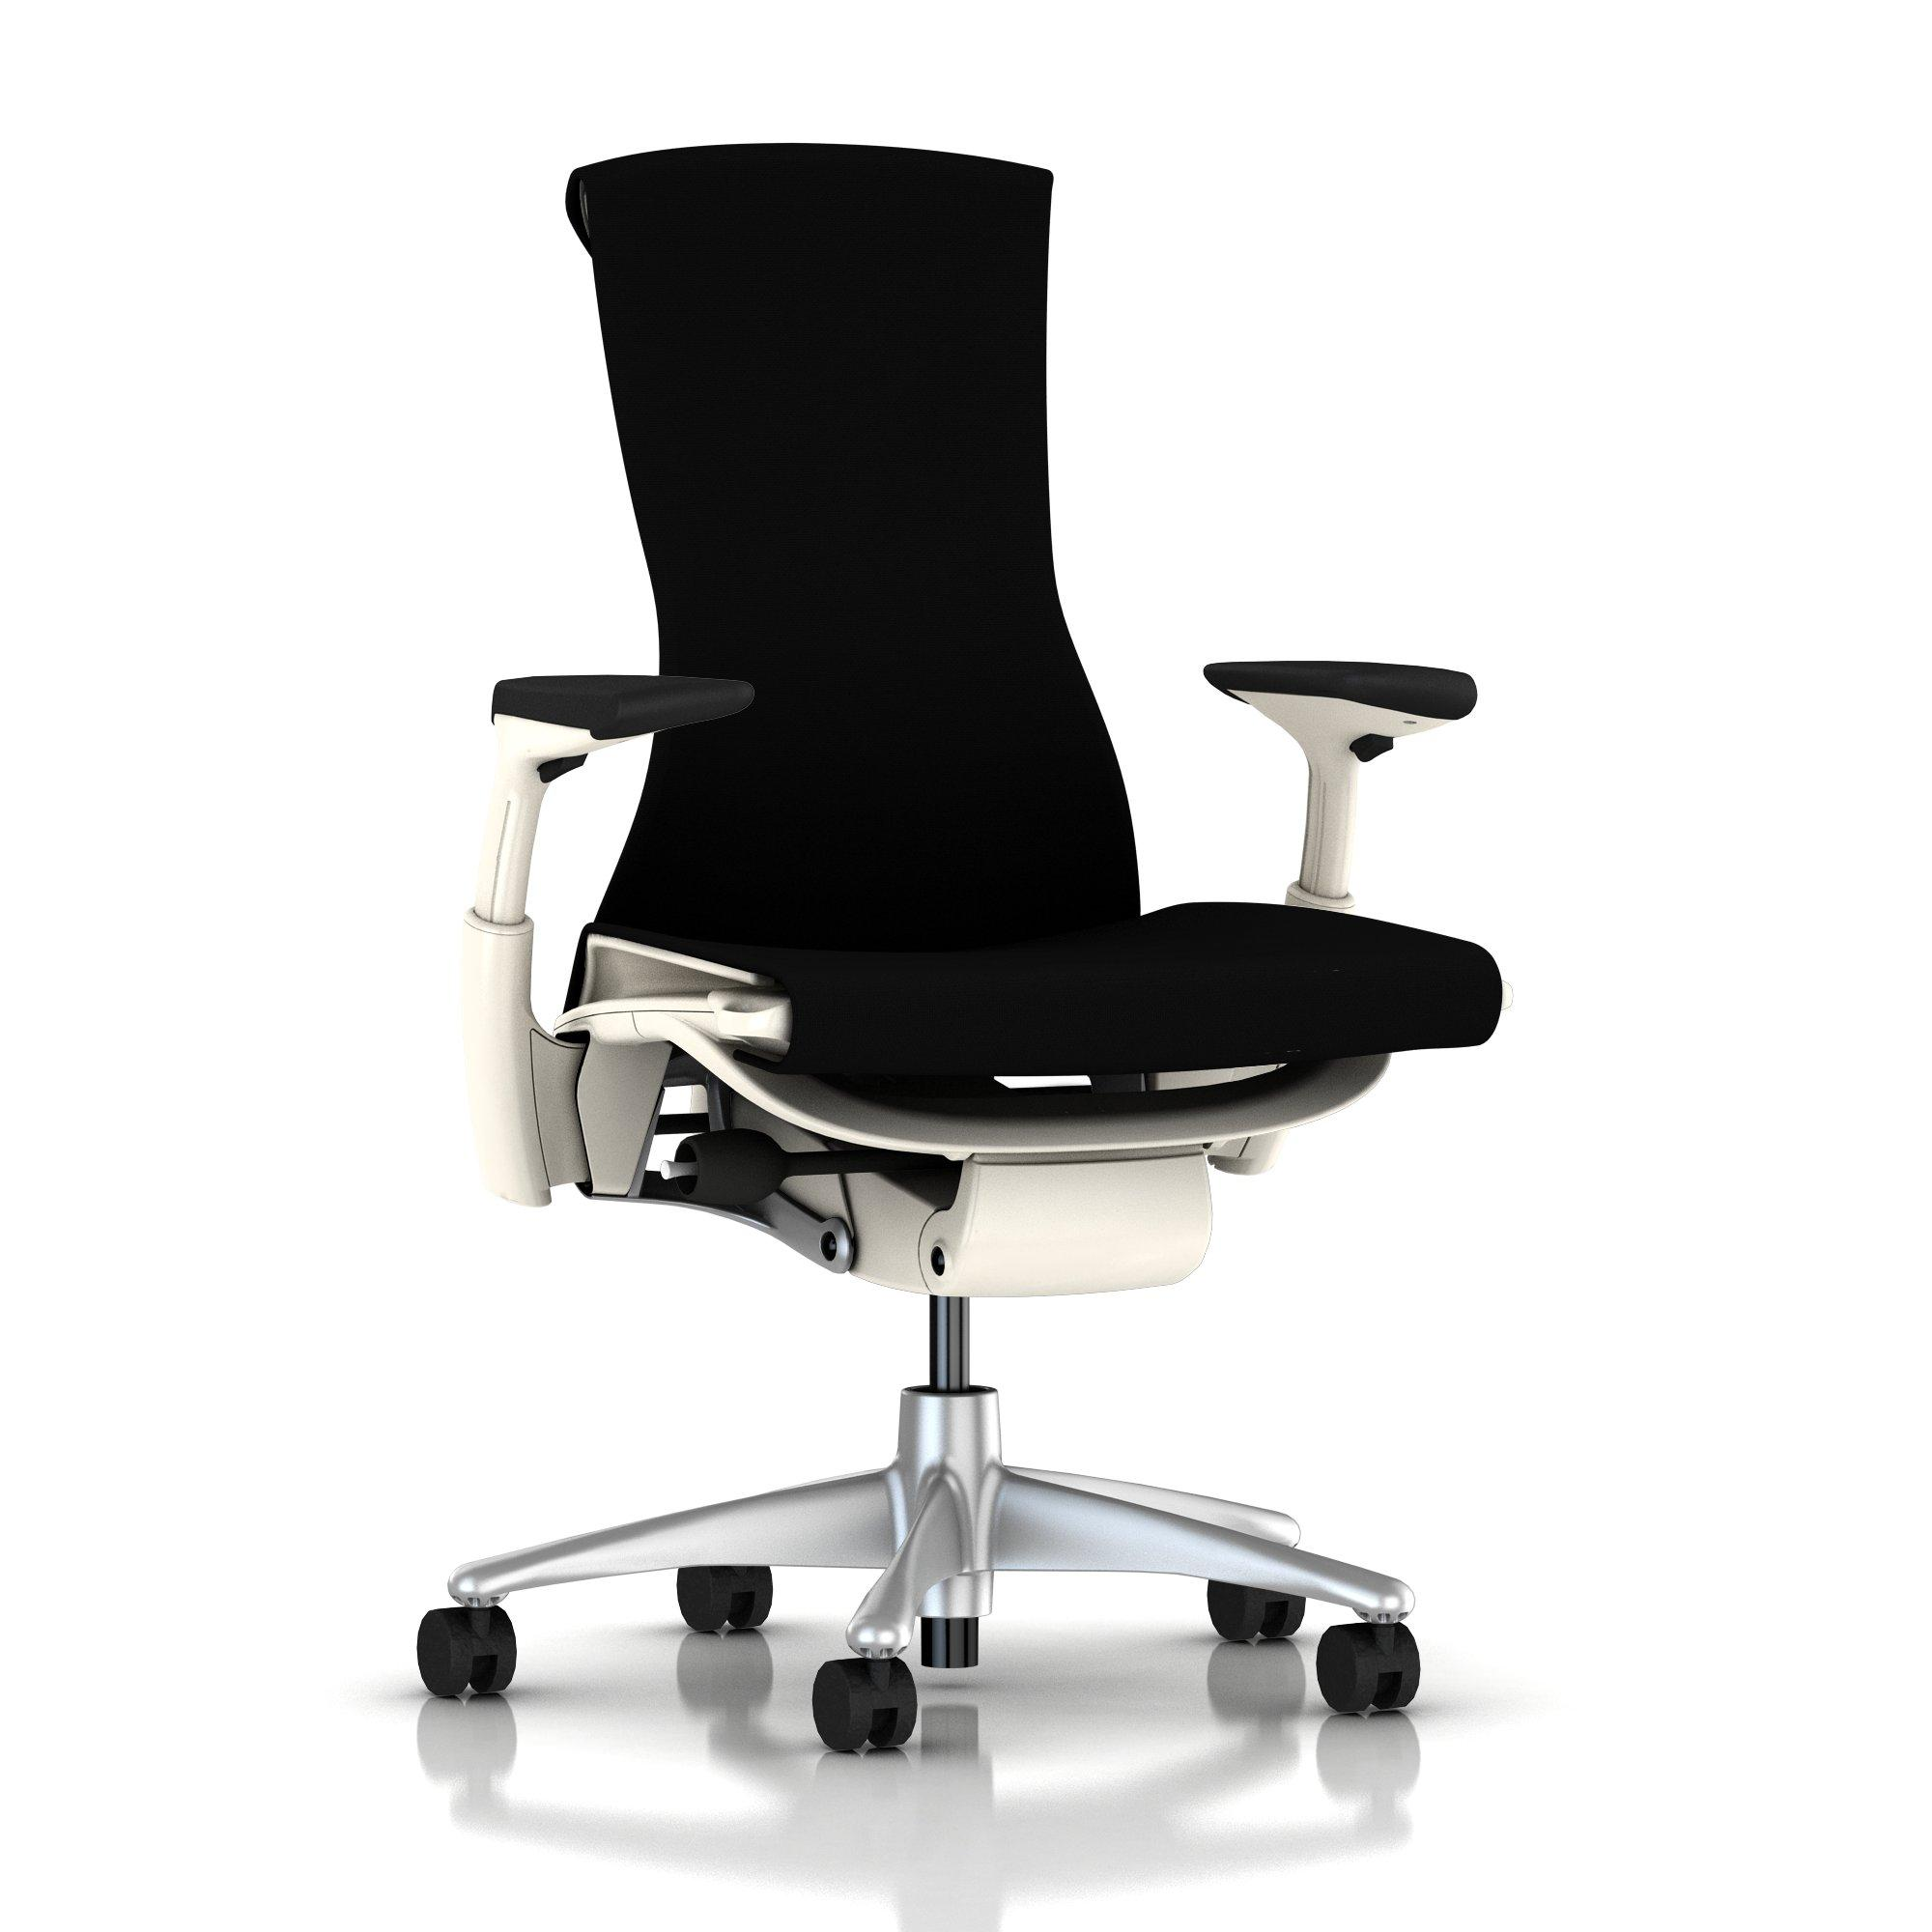 Titanium Base - Adjustable Arms - White Frame - 2.5-inch Standard Carpet Casters - Black Rhythm Fabric Seat and Back